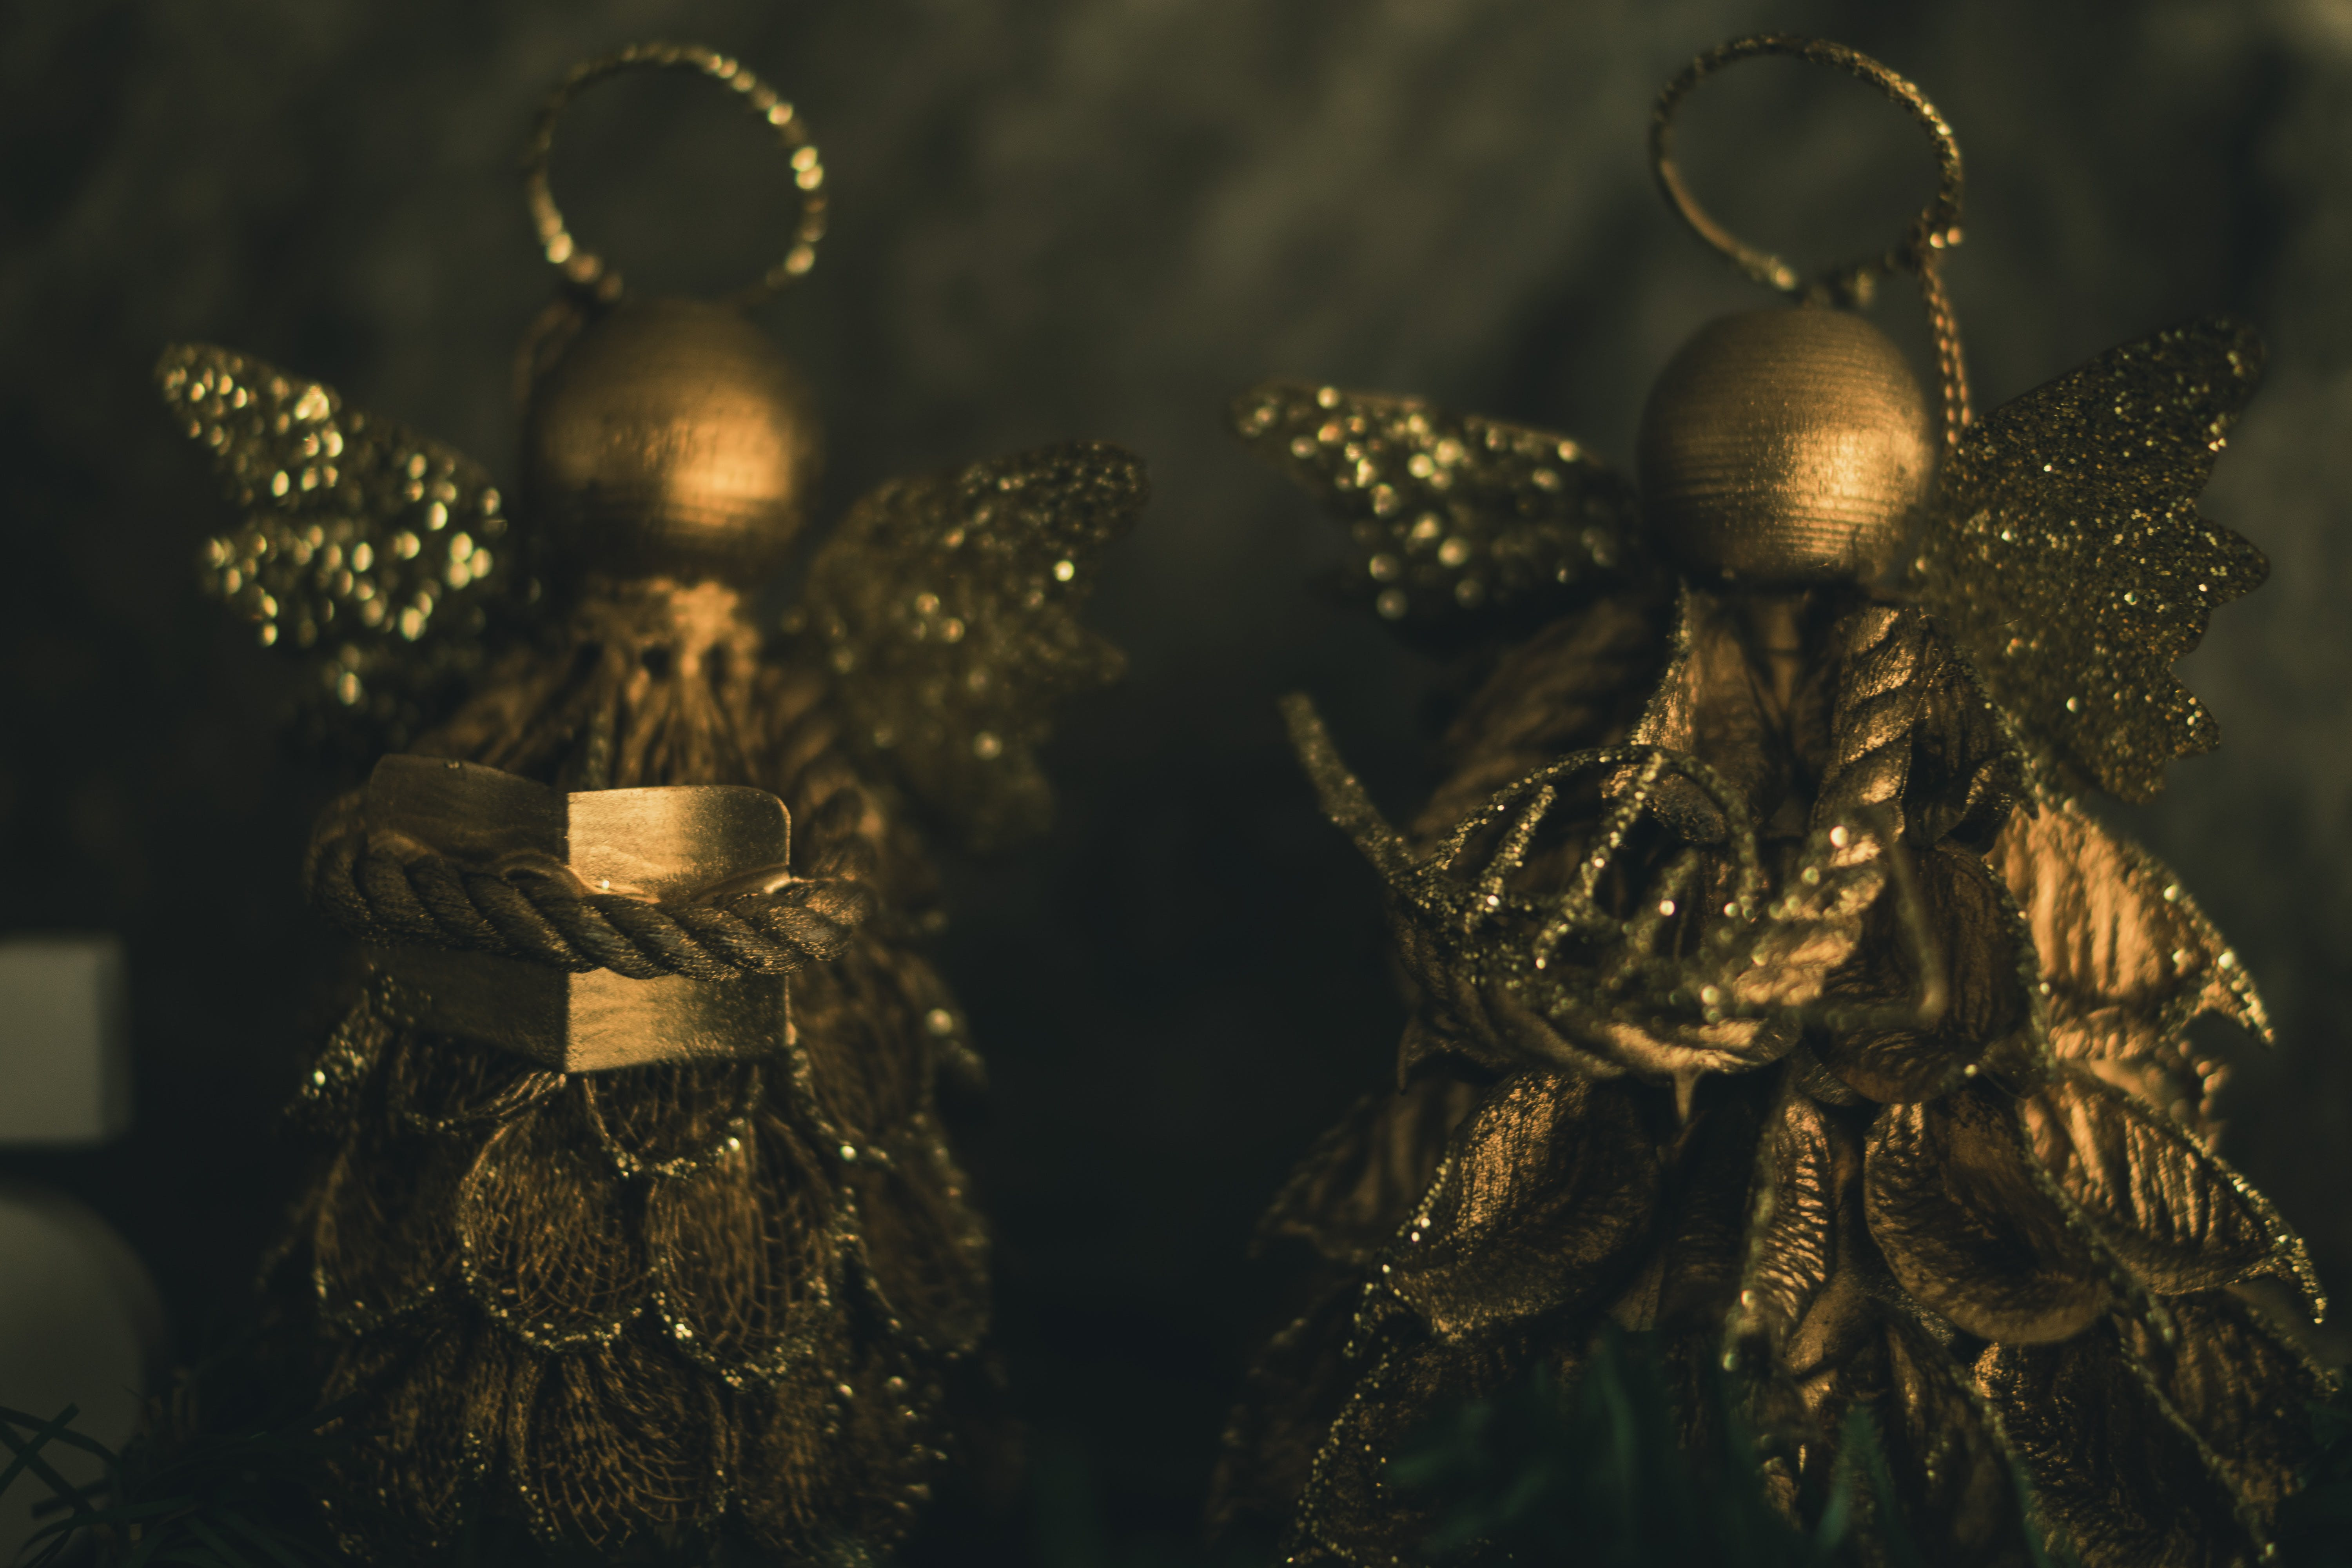 Two Gold-colored Christmas Decorations